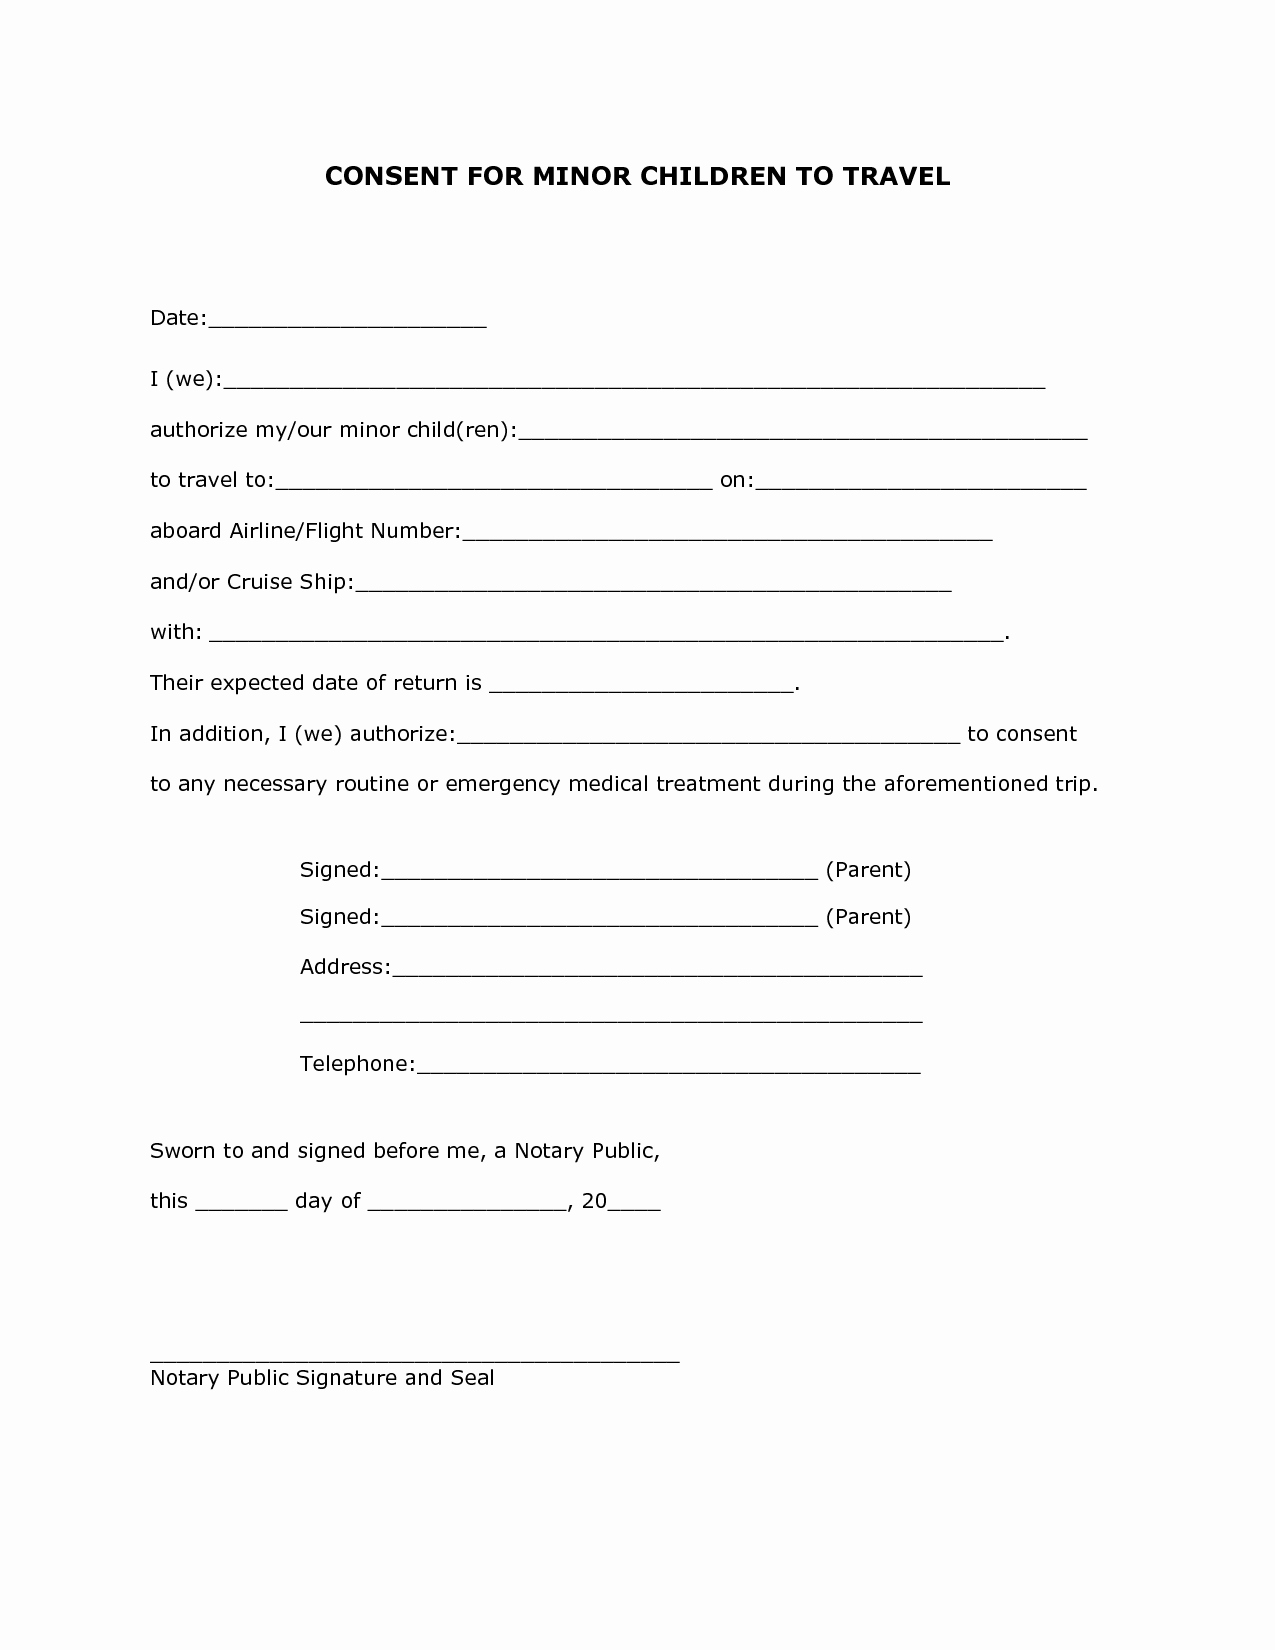 Child Travel Consent form Template Luxury Best S Of Notarized Travel Letter for Minor Child